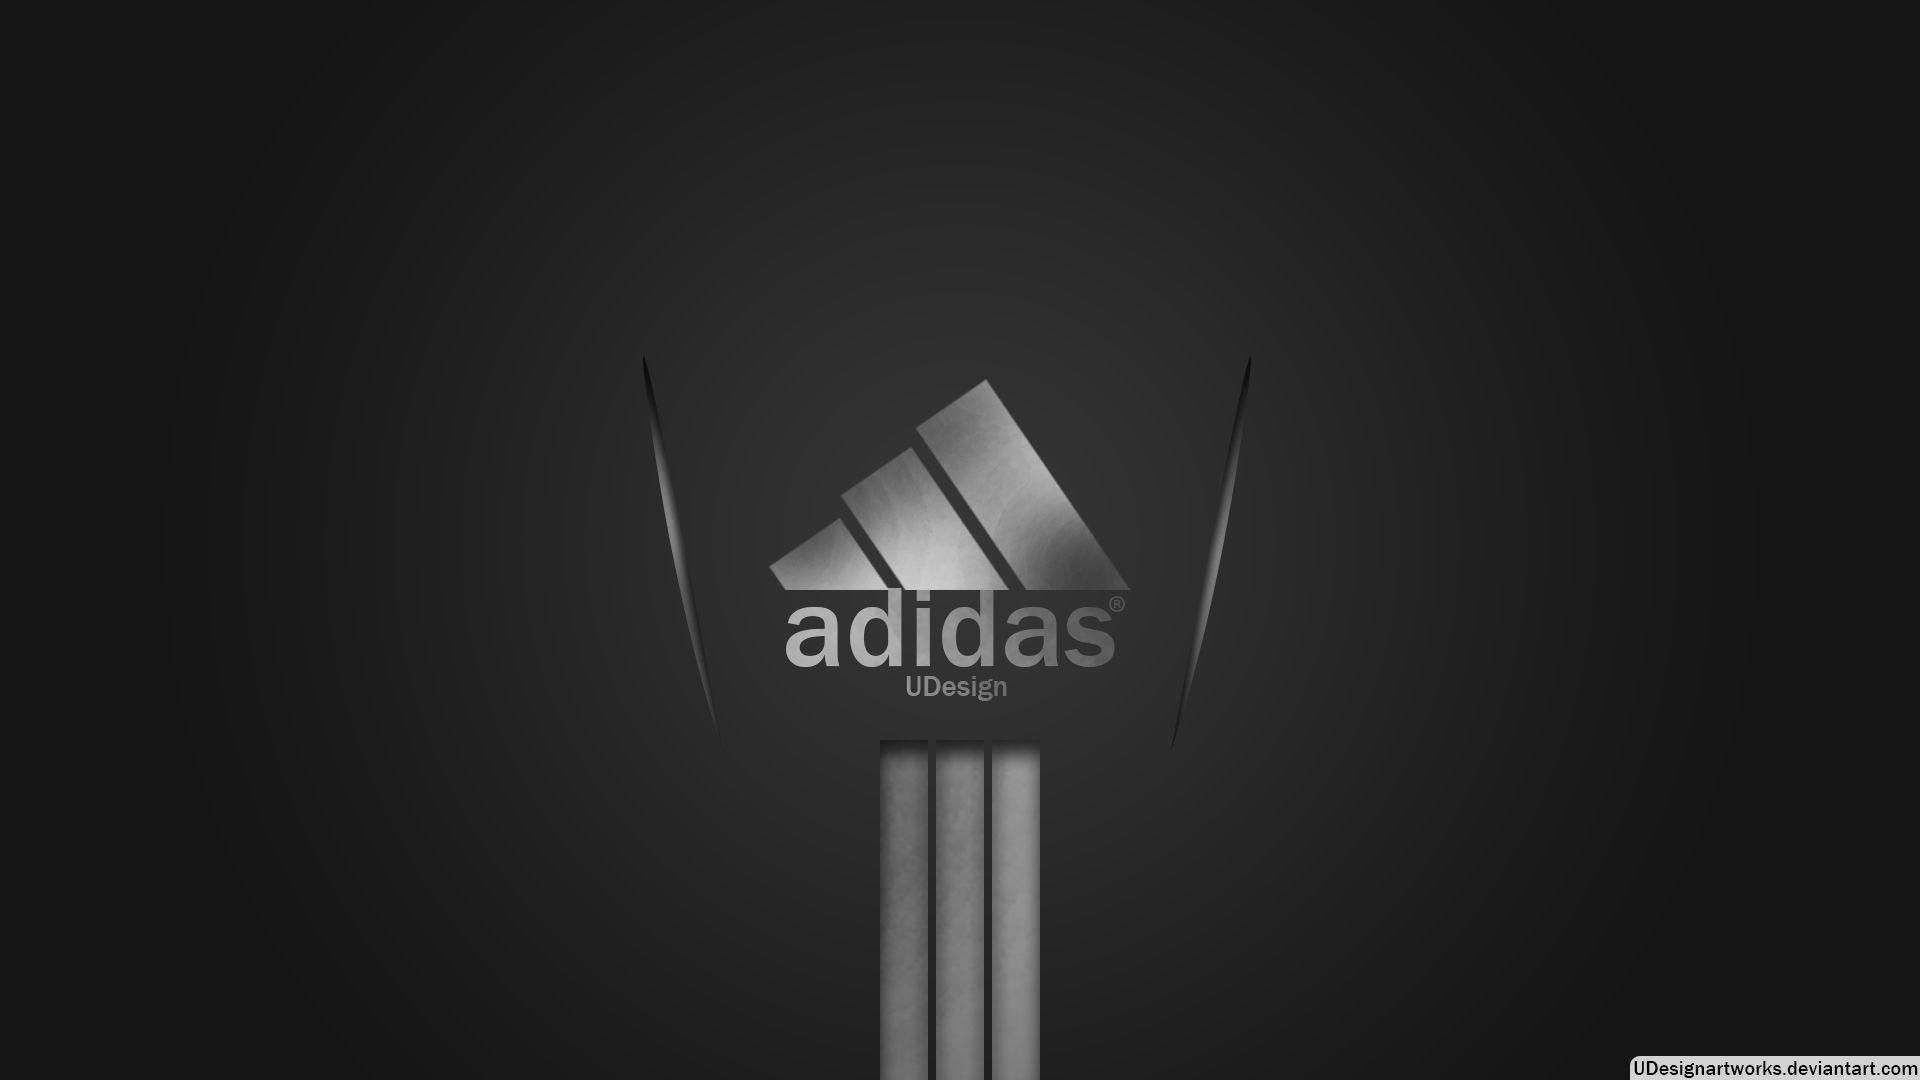 The Wallpapers Adidas 1